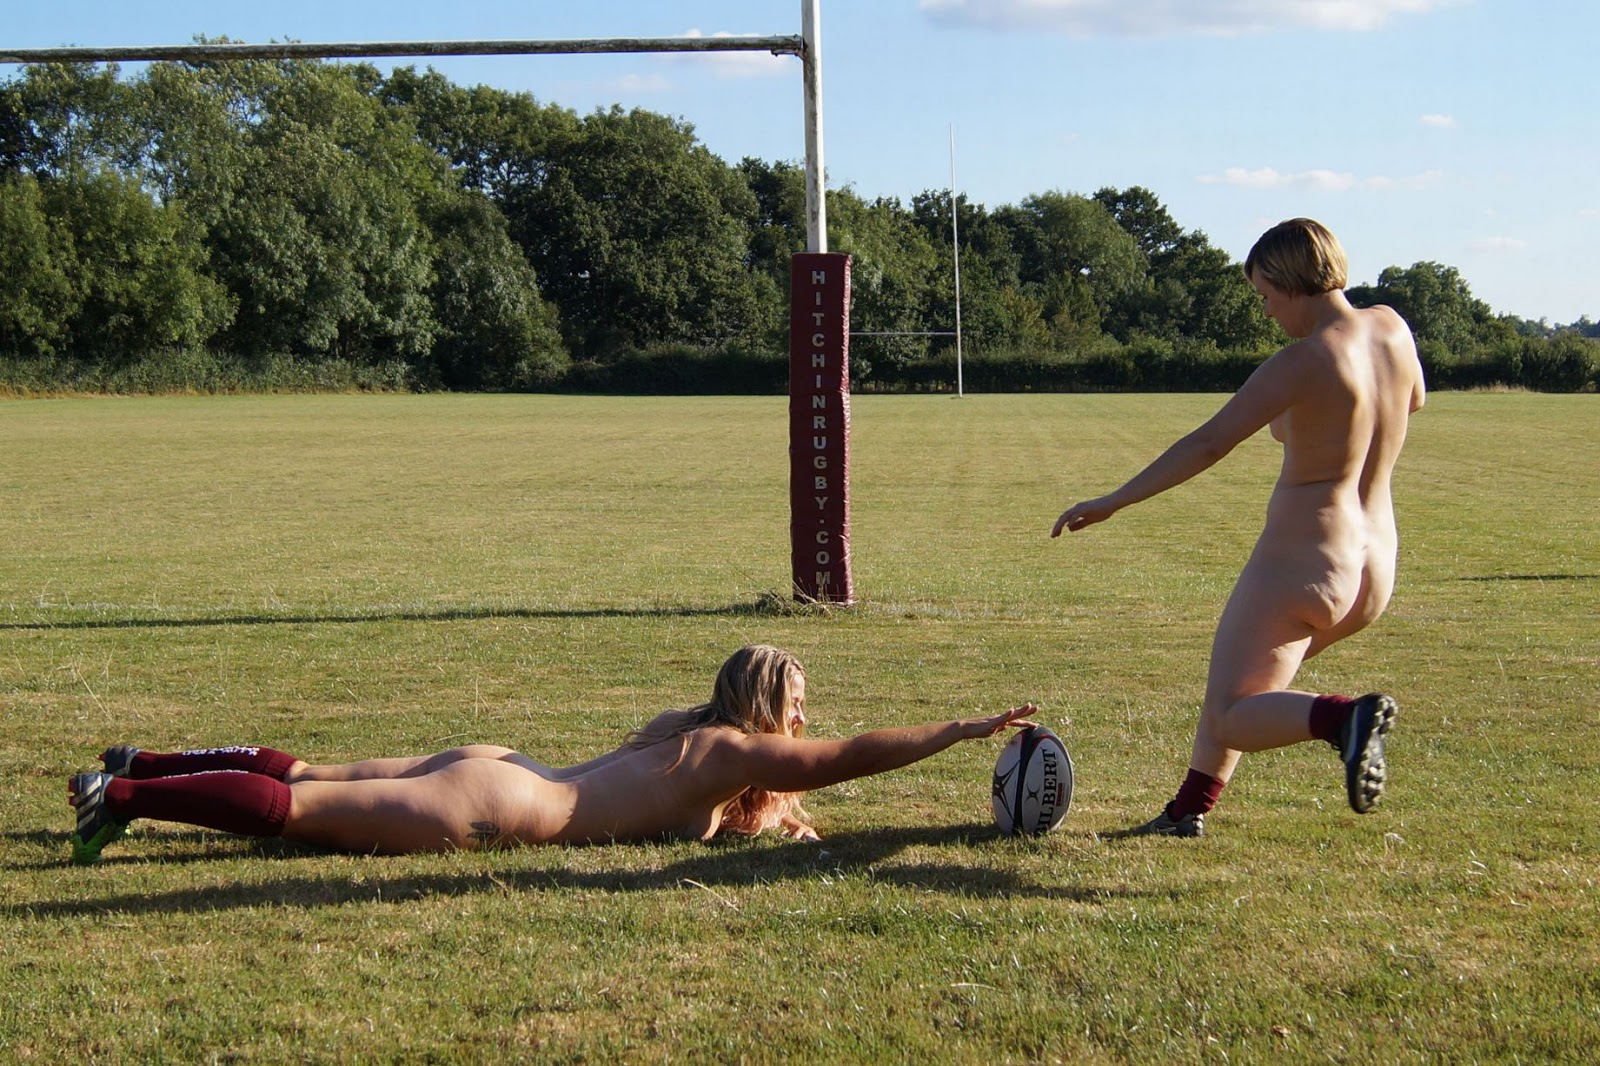 Nude Female Rugby Team